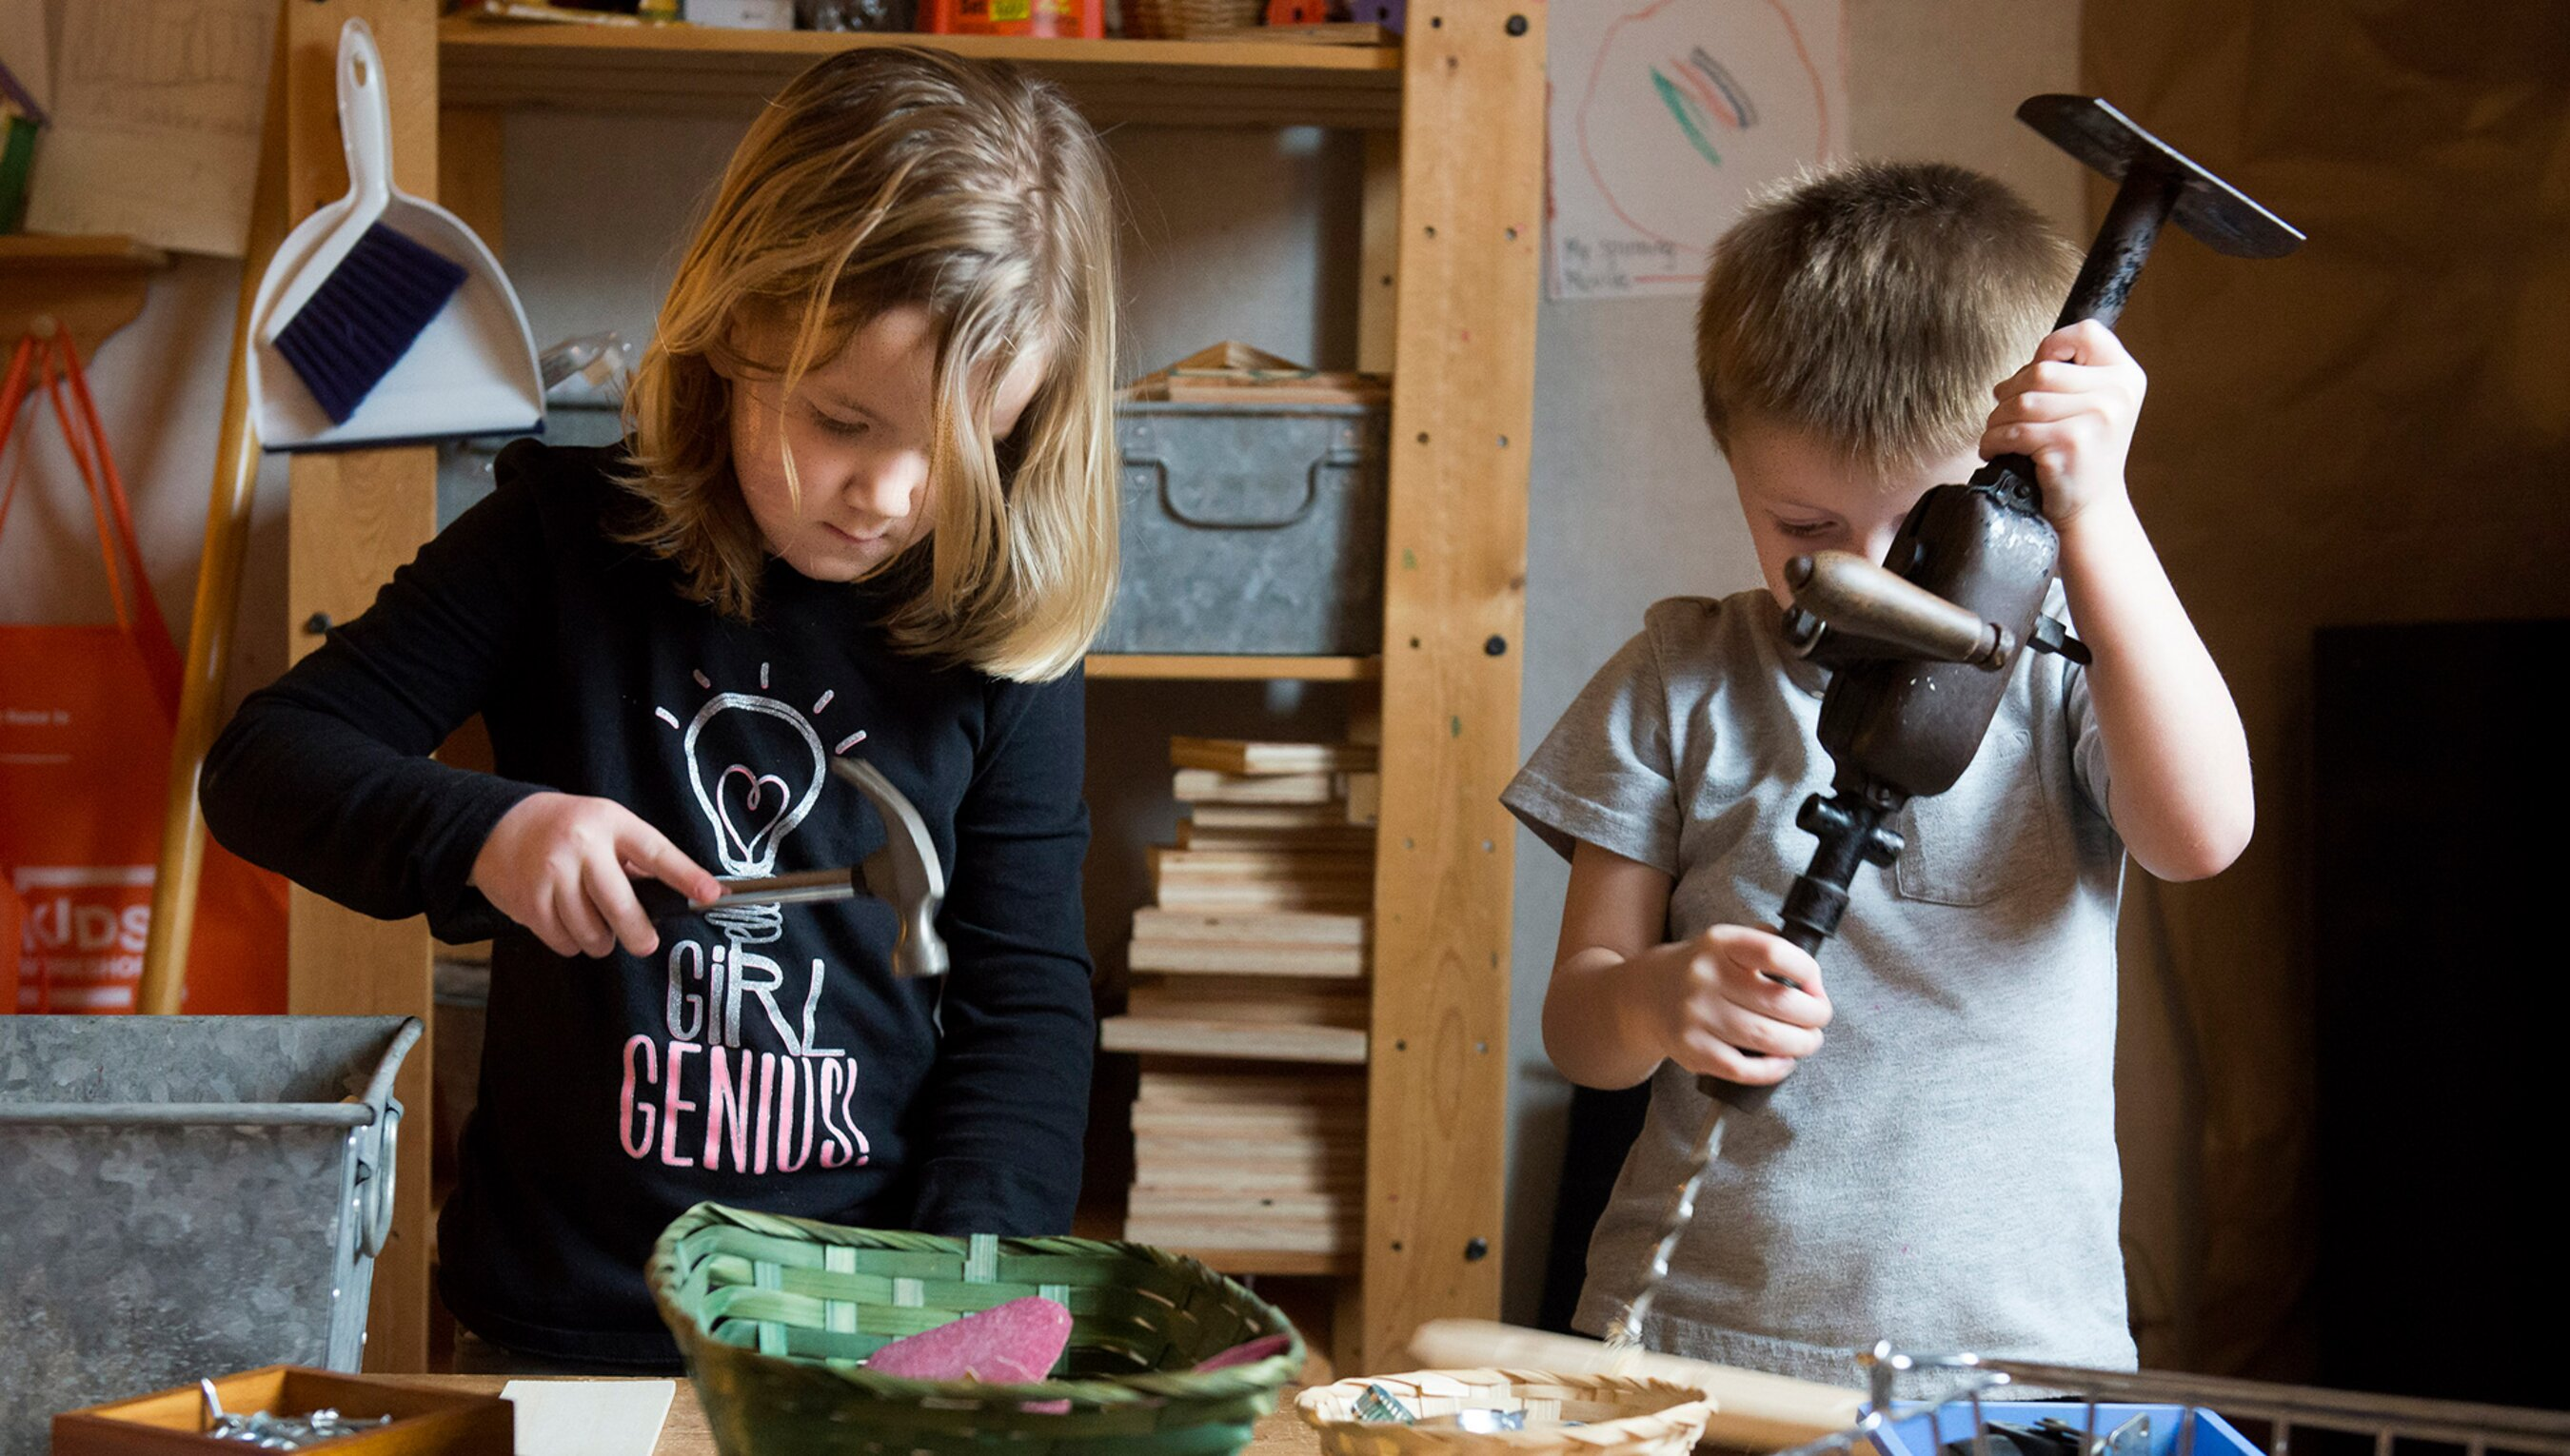 Handcraft lessons belong in a radical school curriculum | Psyche